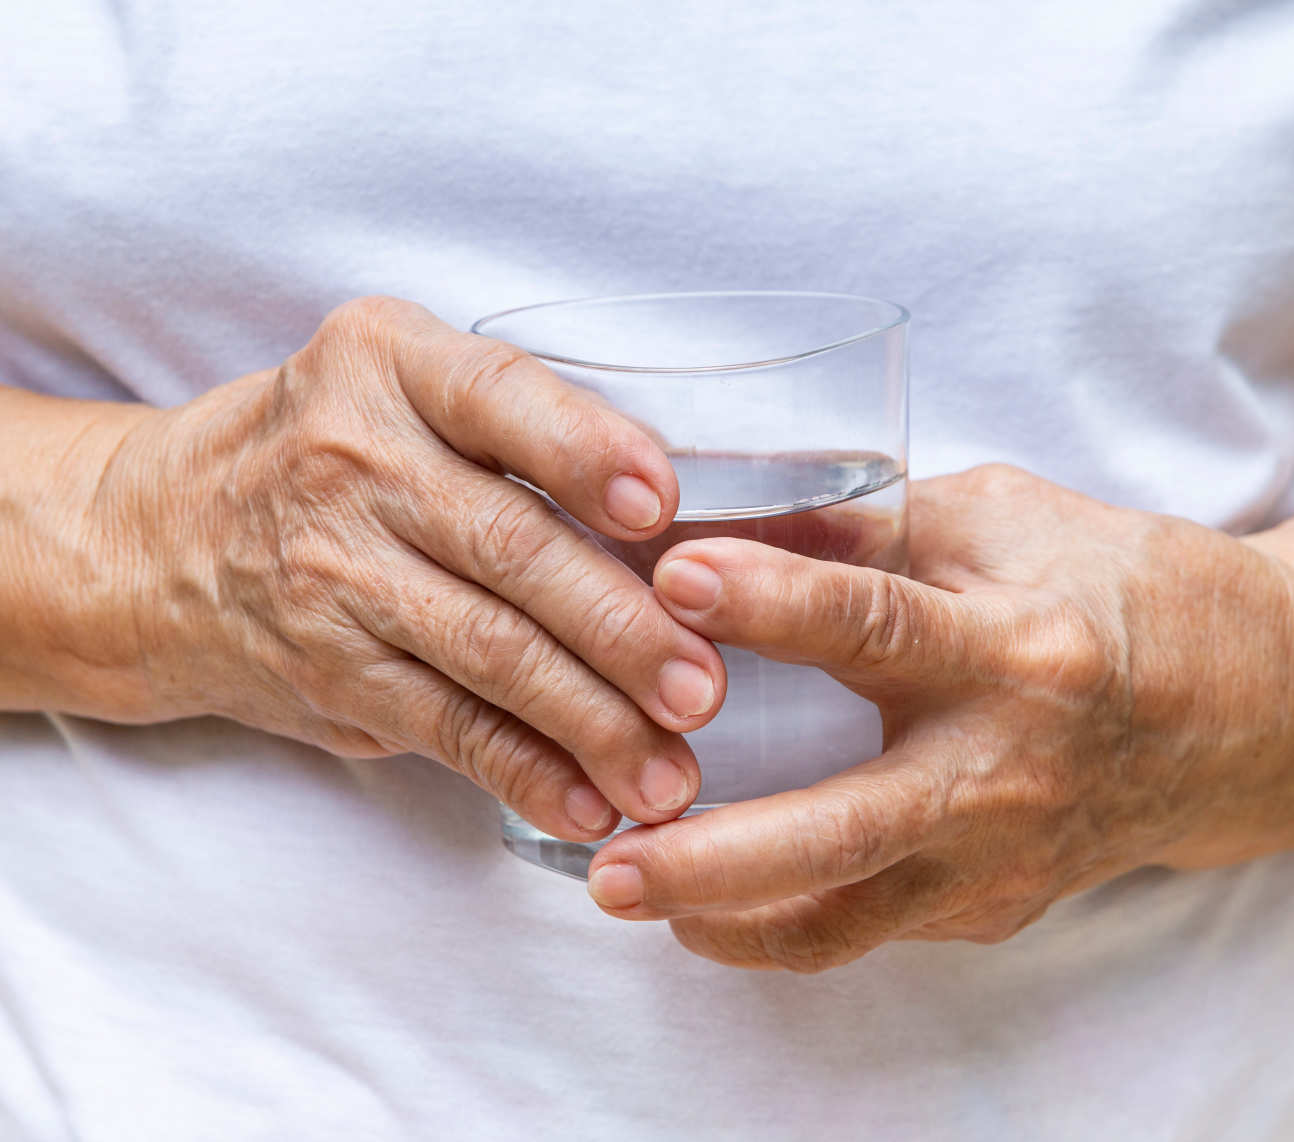 Elderly person's hand holding a glass